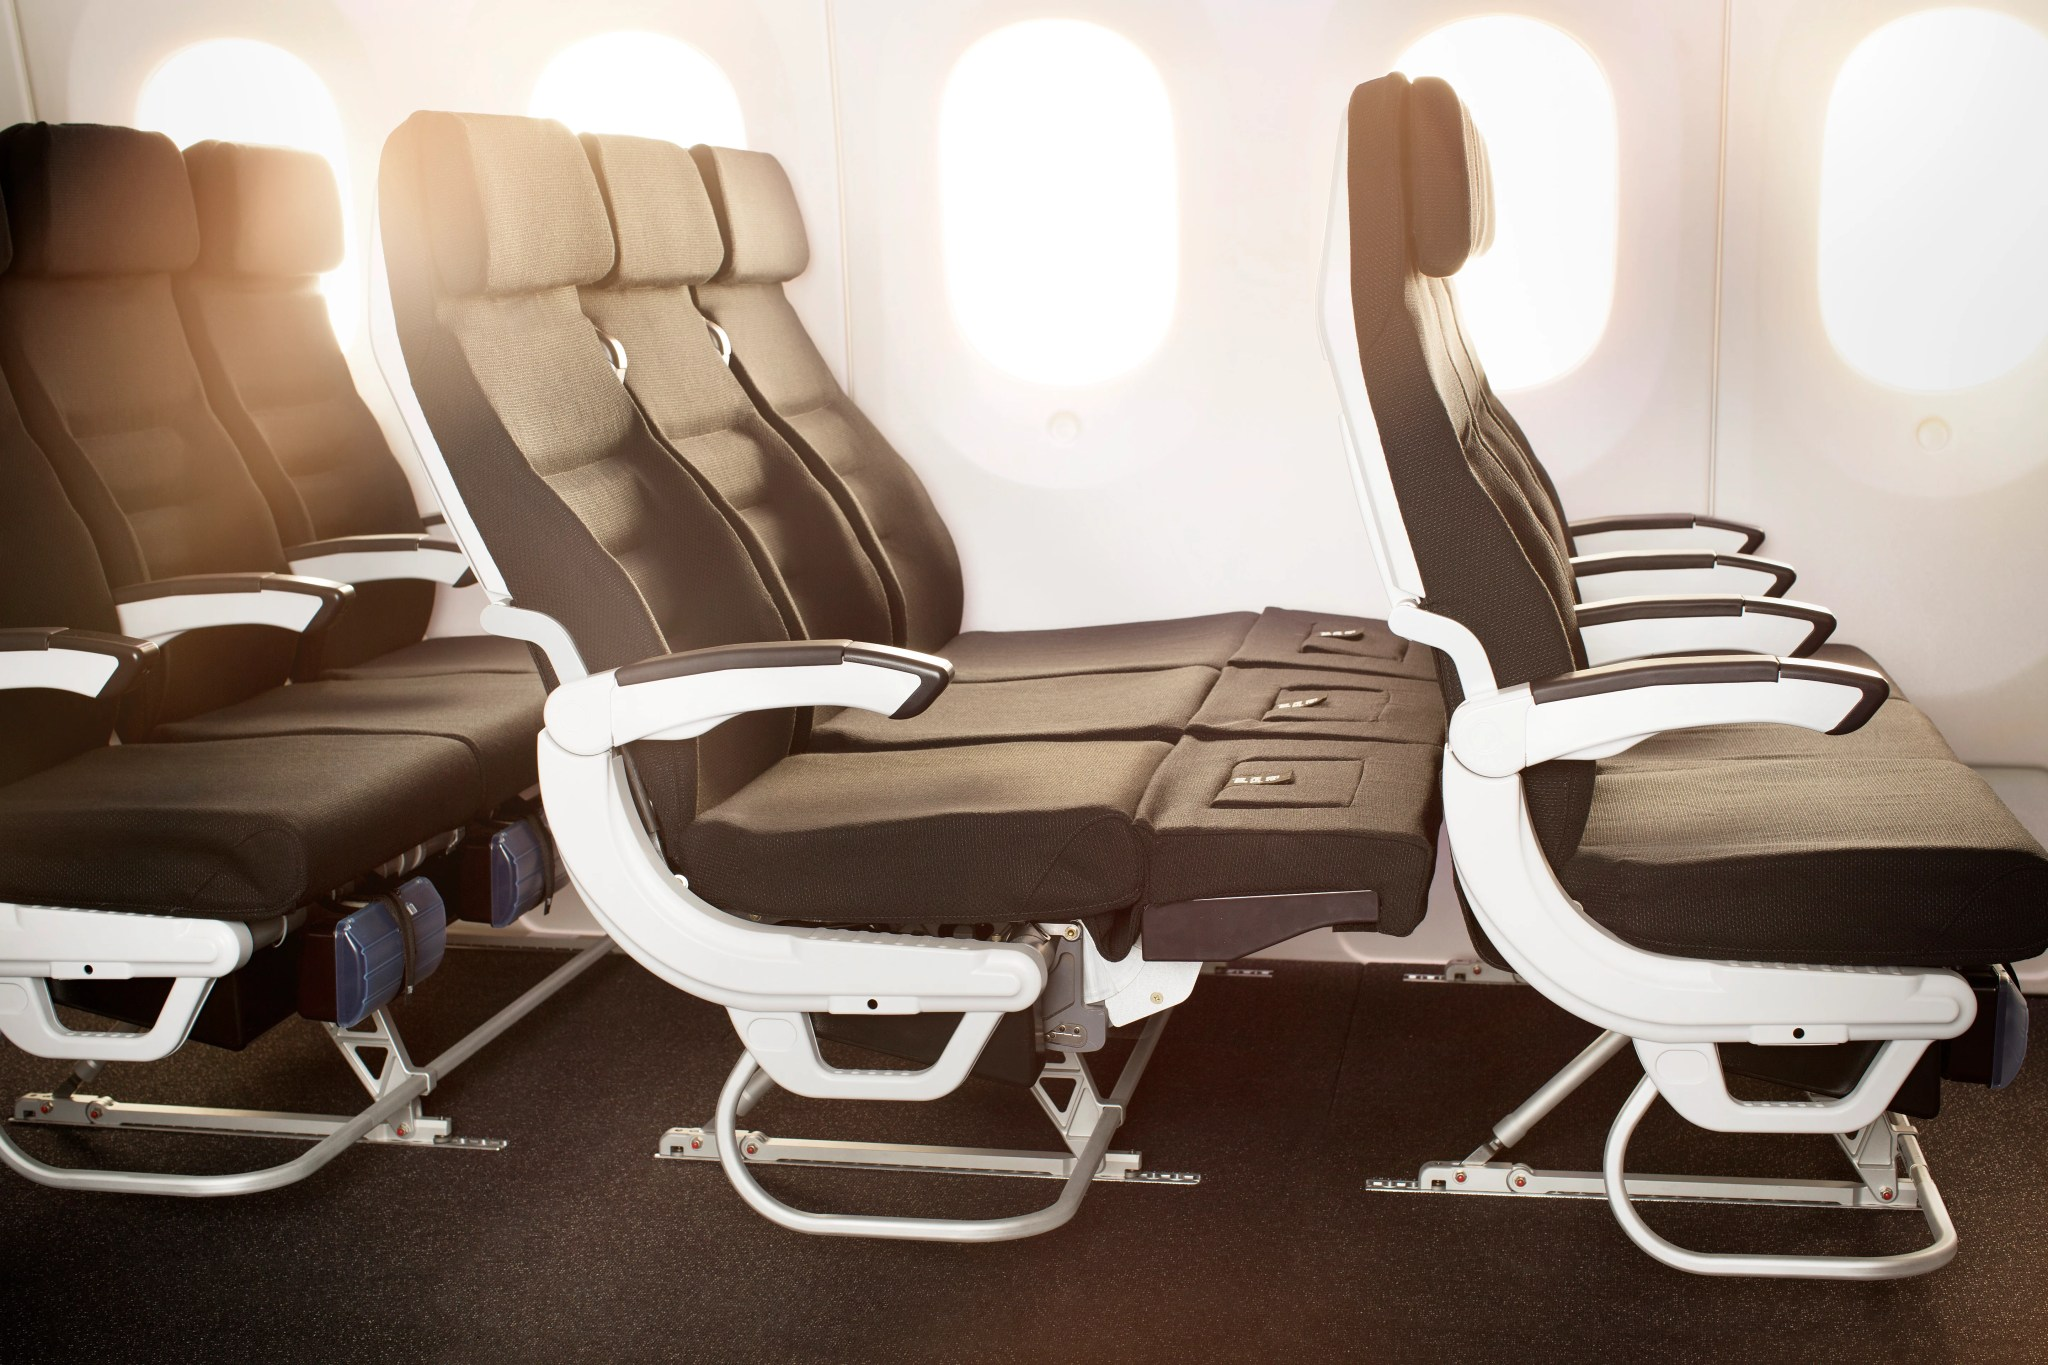 Tremendous Which Airlines Offer Sleeper Seats Ocoug Best Dining Table And Chair Ideas Images Ocougorg